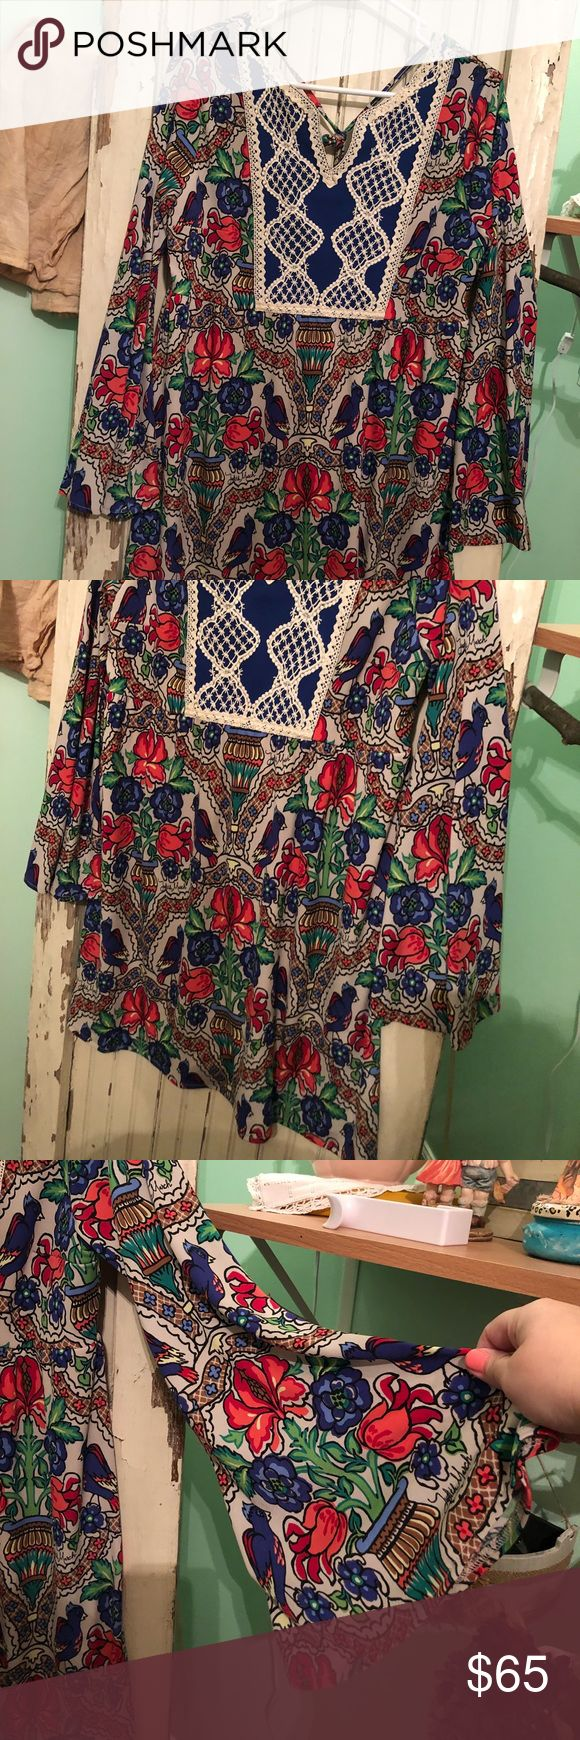 """Judith March Dress New without tags Judith March Dress Size Large. Super cute and soft!! Perfect spring dress Measurement  19"""" Bust  33"""" Length Judith March Dresses Midi"""